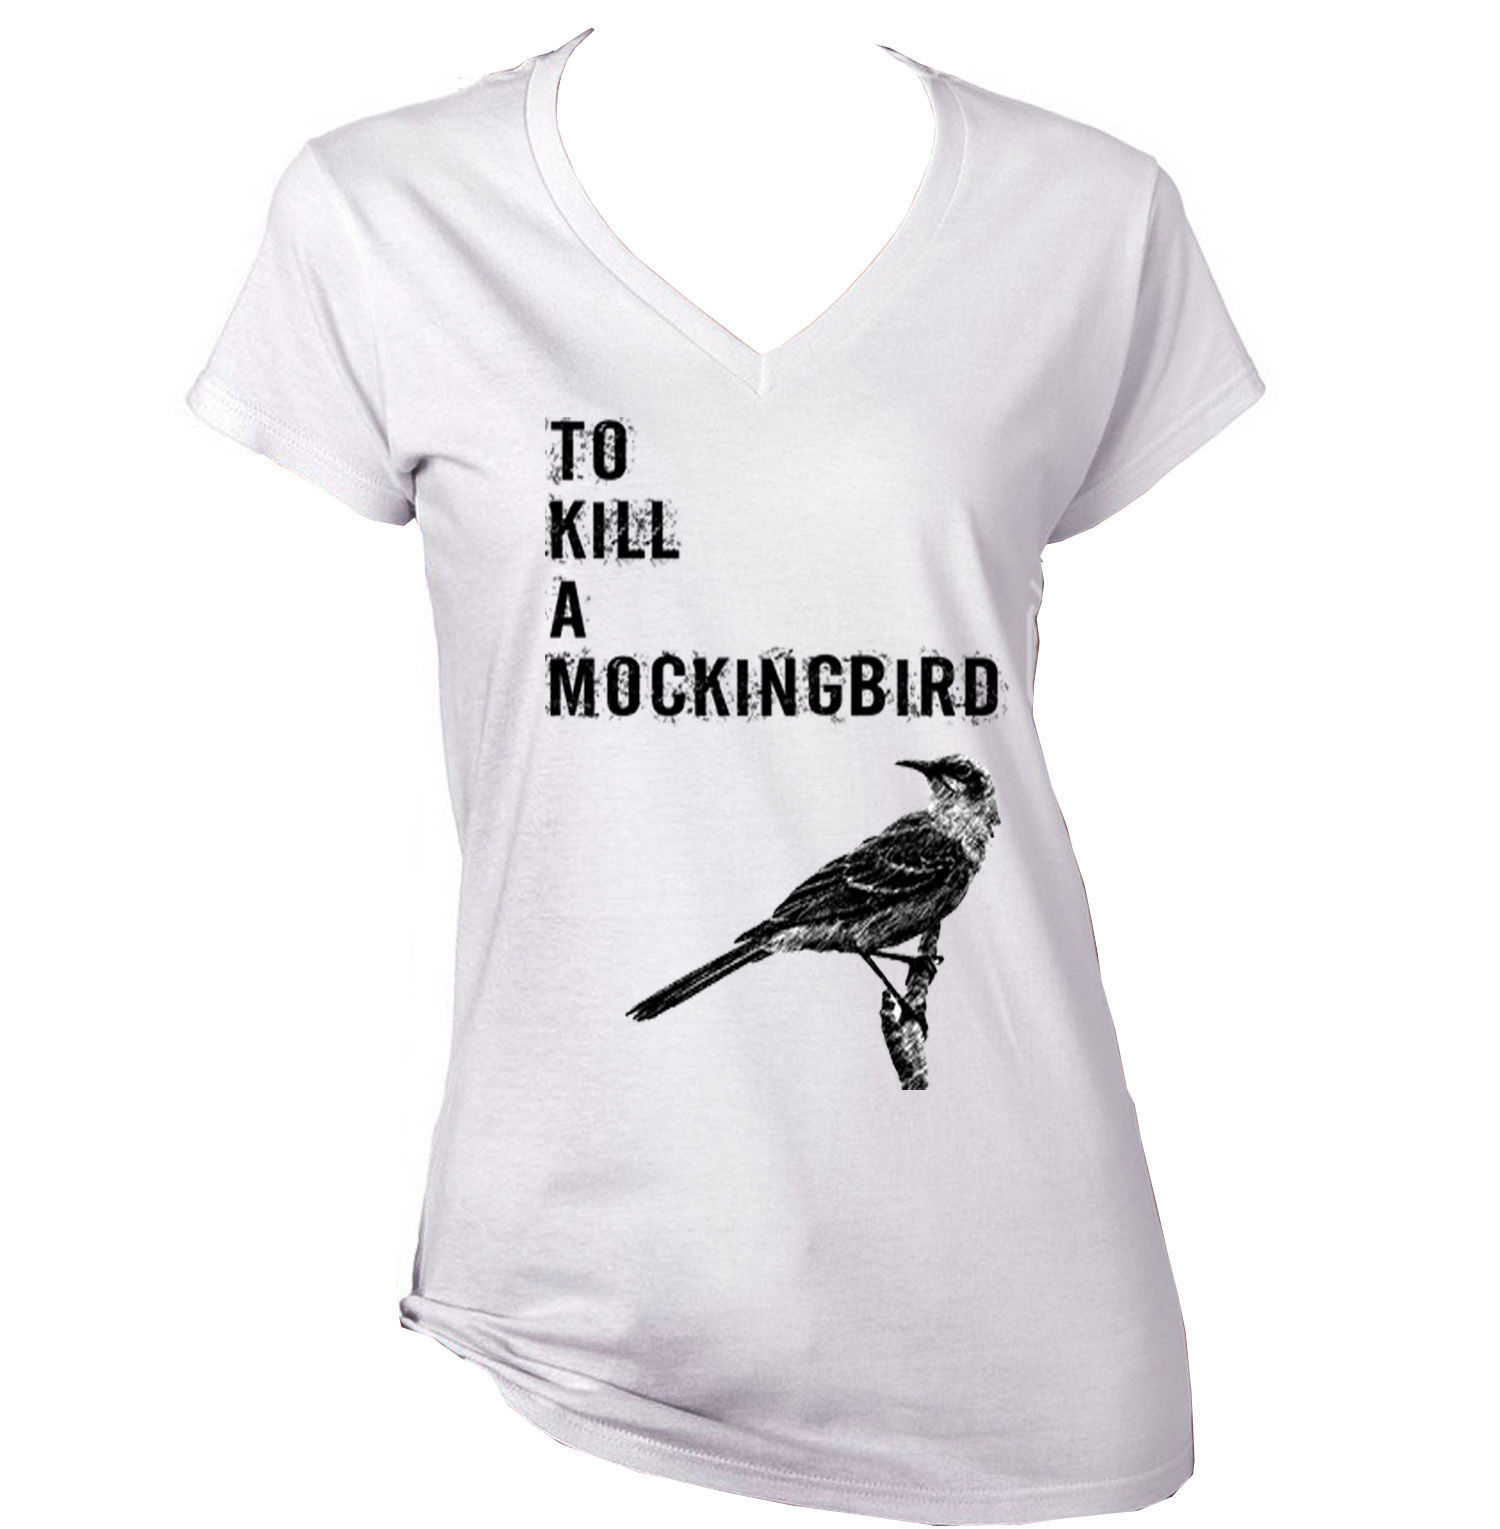 Primary image for TO KILL A MOCKINGBIRD - LADY COTTON WHITE TSHIRT